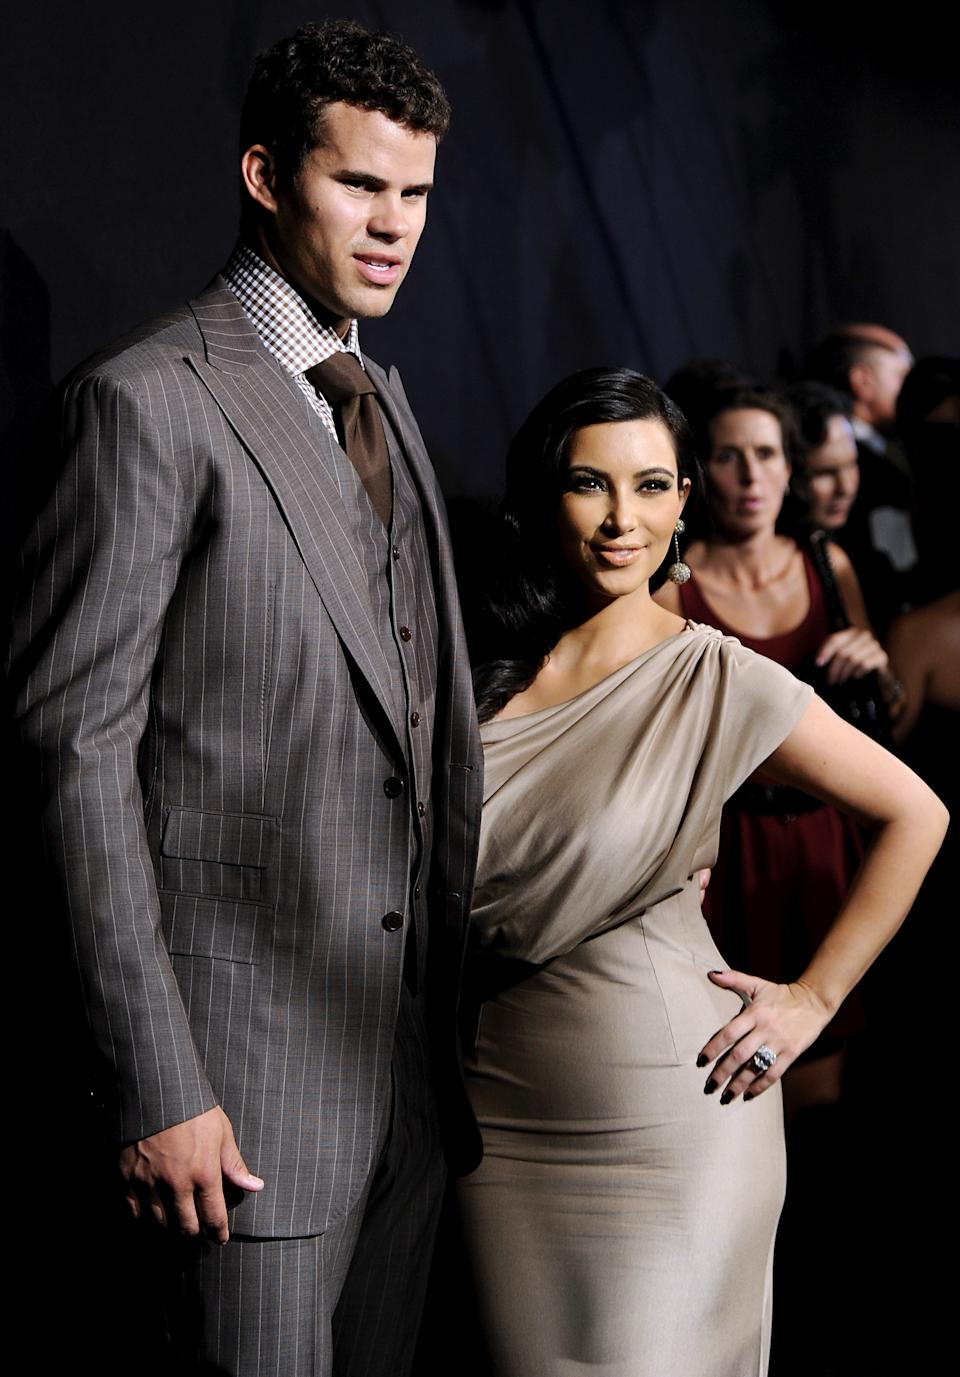 FILE - In this Aug. 31, 2011 file photo, newlyweds Kim Kardashian and Kris Humphries attend a party thrown in their honor at Capitale in New York. The couple married on Aug. 20 in a star-studded, black-tie ceremony. The marriage lasted 72 days. (AP Photo/Evan Agostini, file)